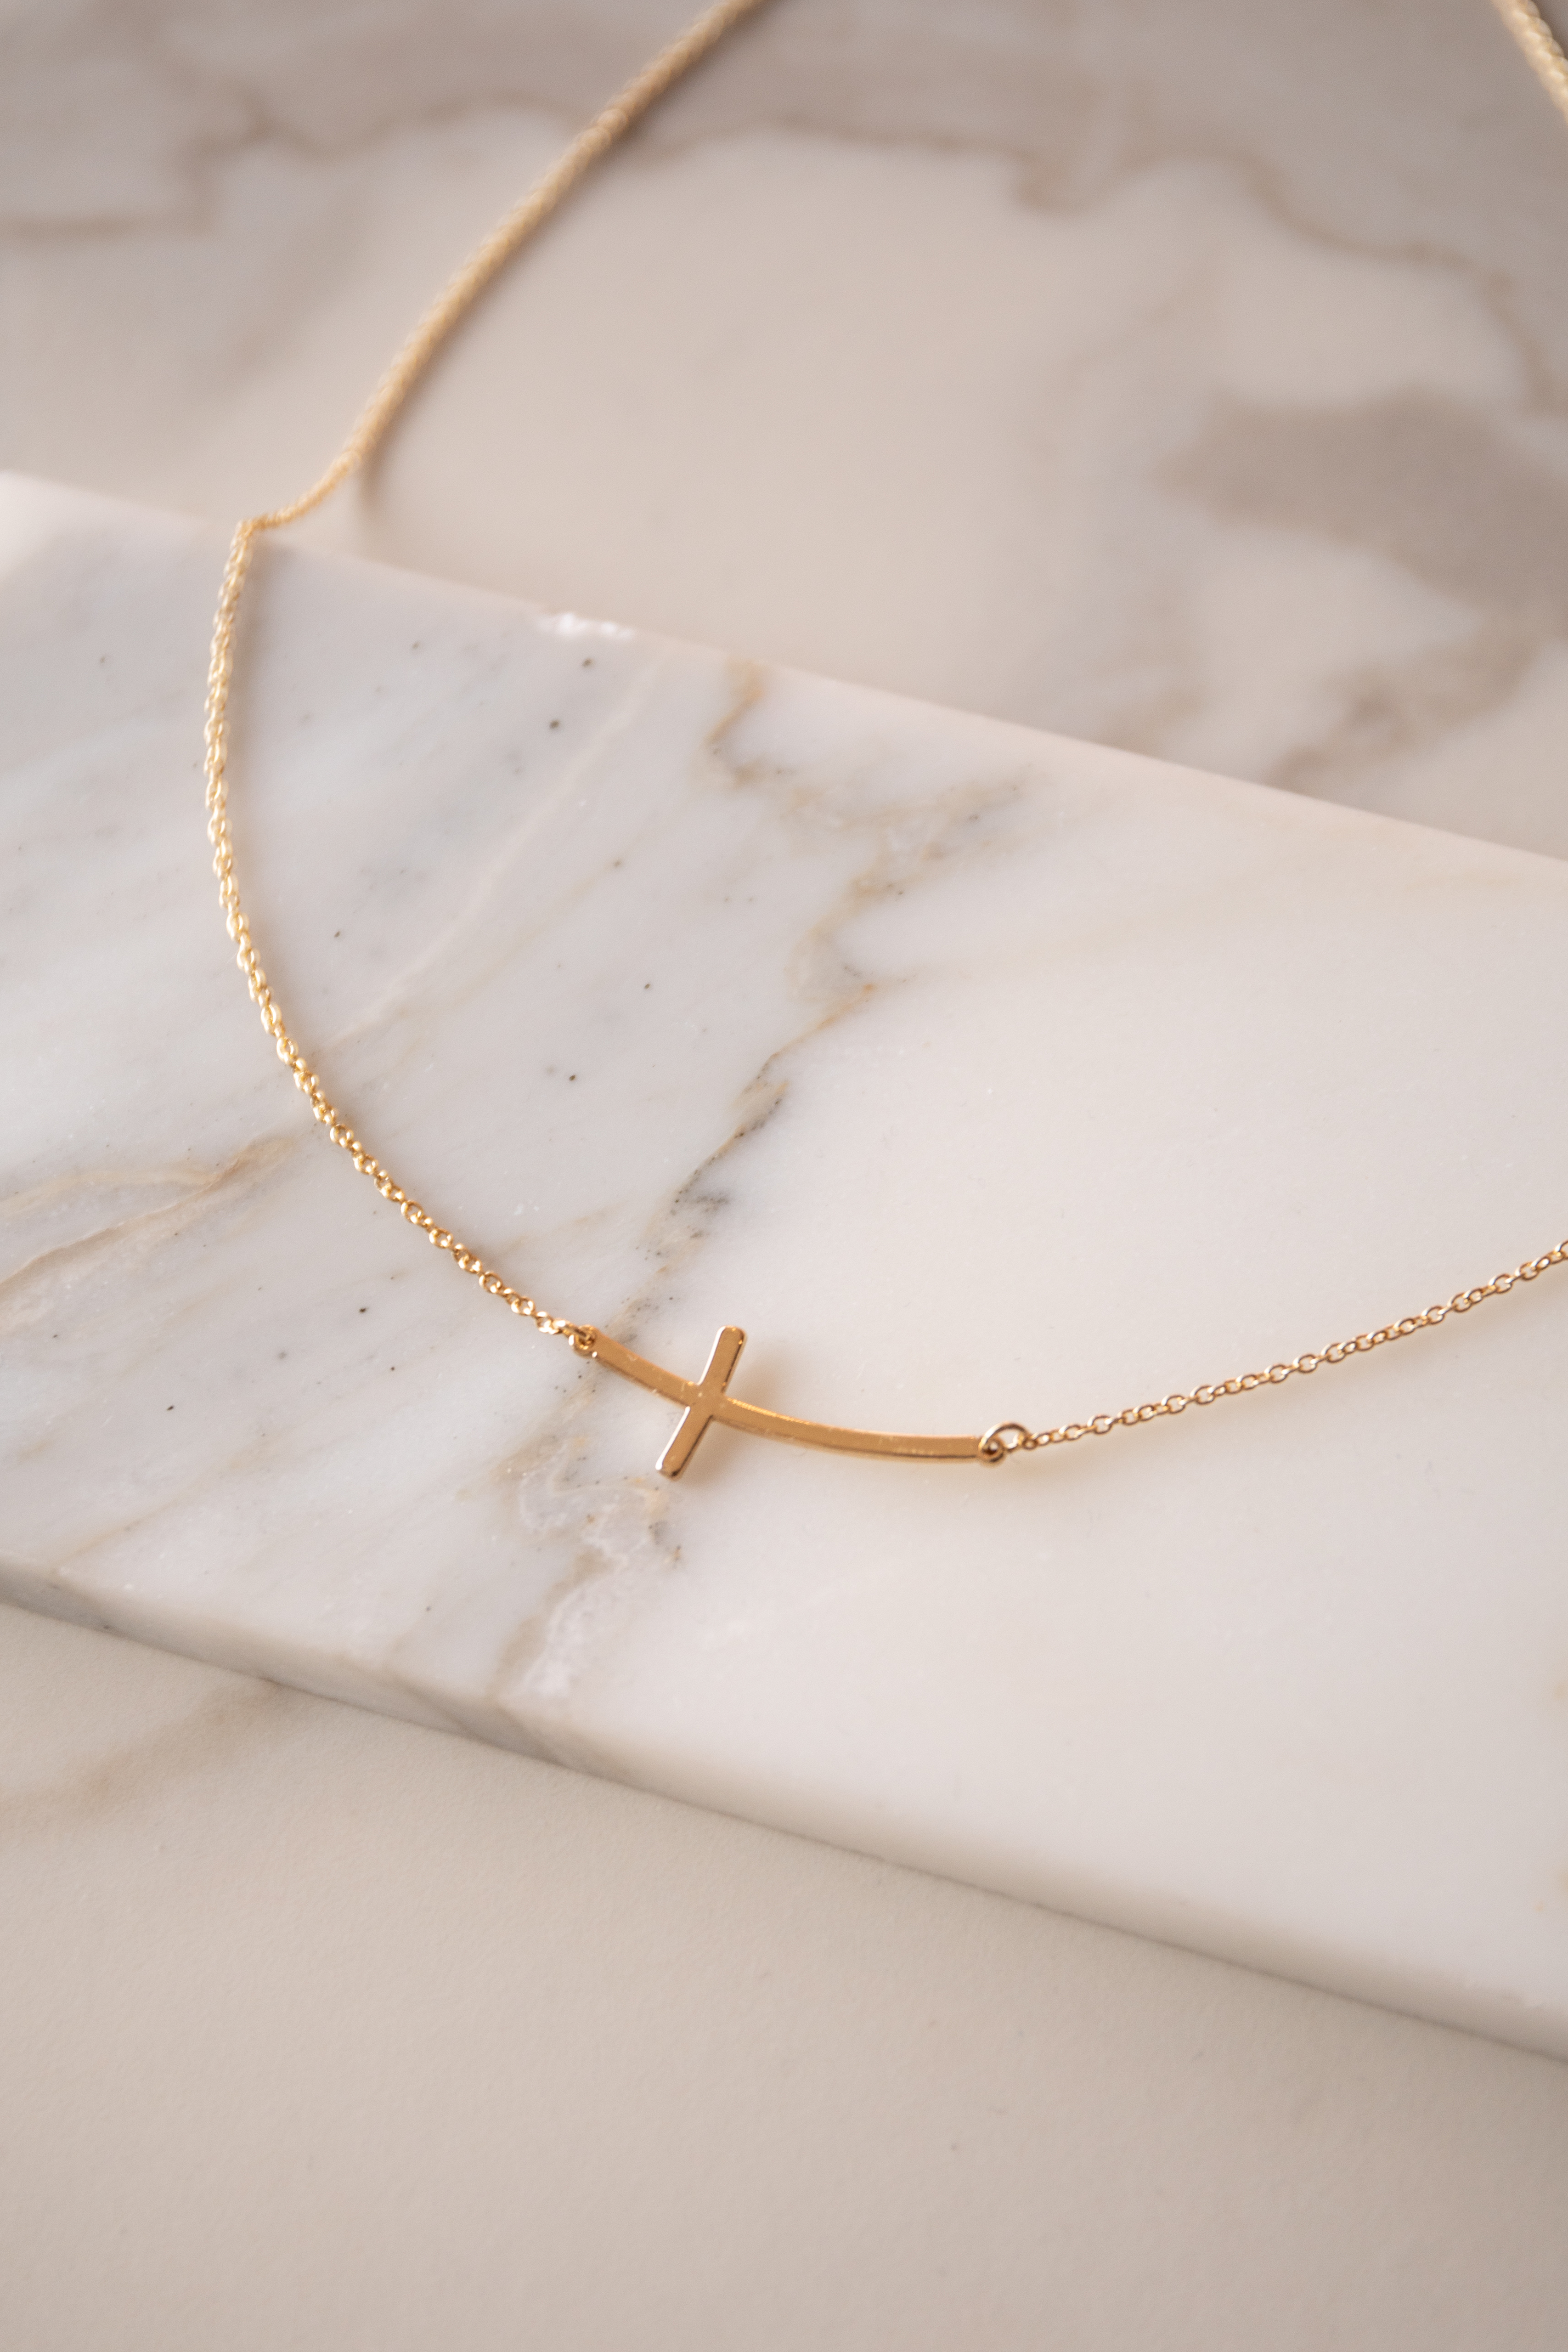 Gold Dainty Short Necklace with Sideways Cross Charm